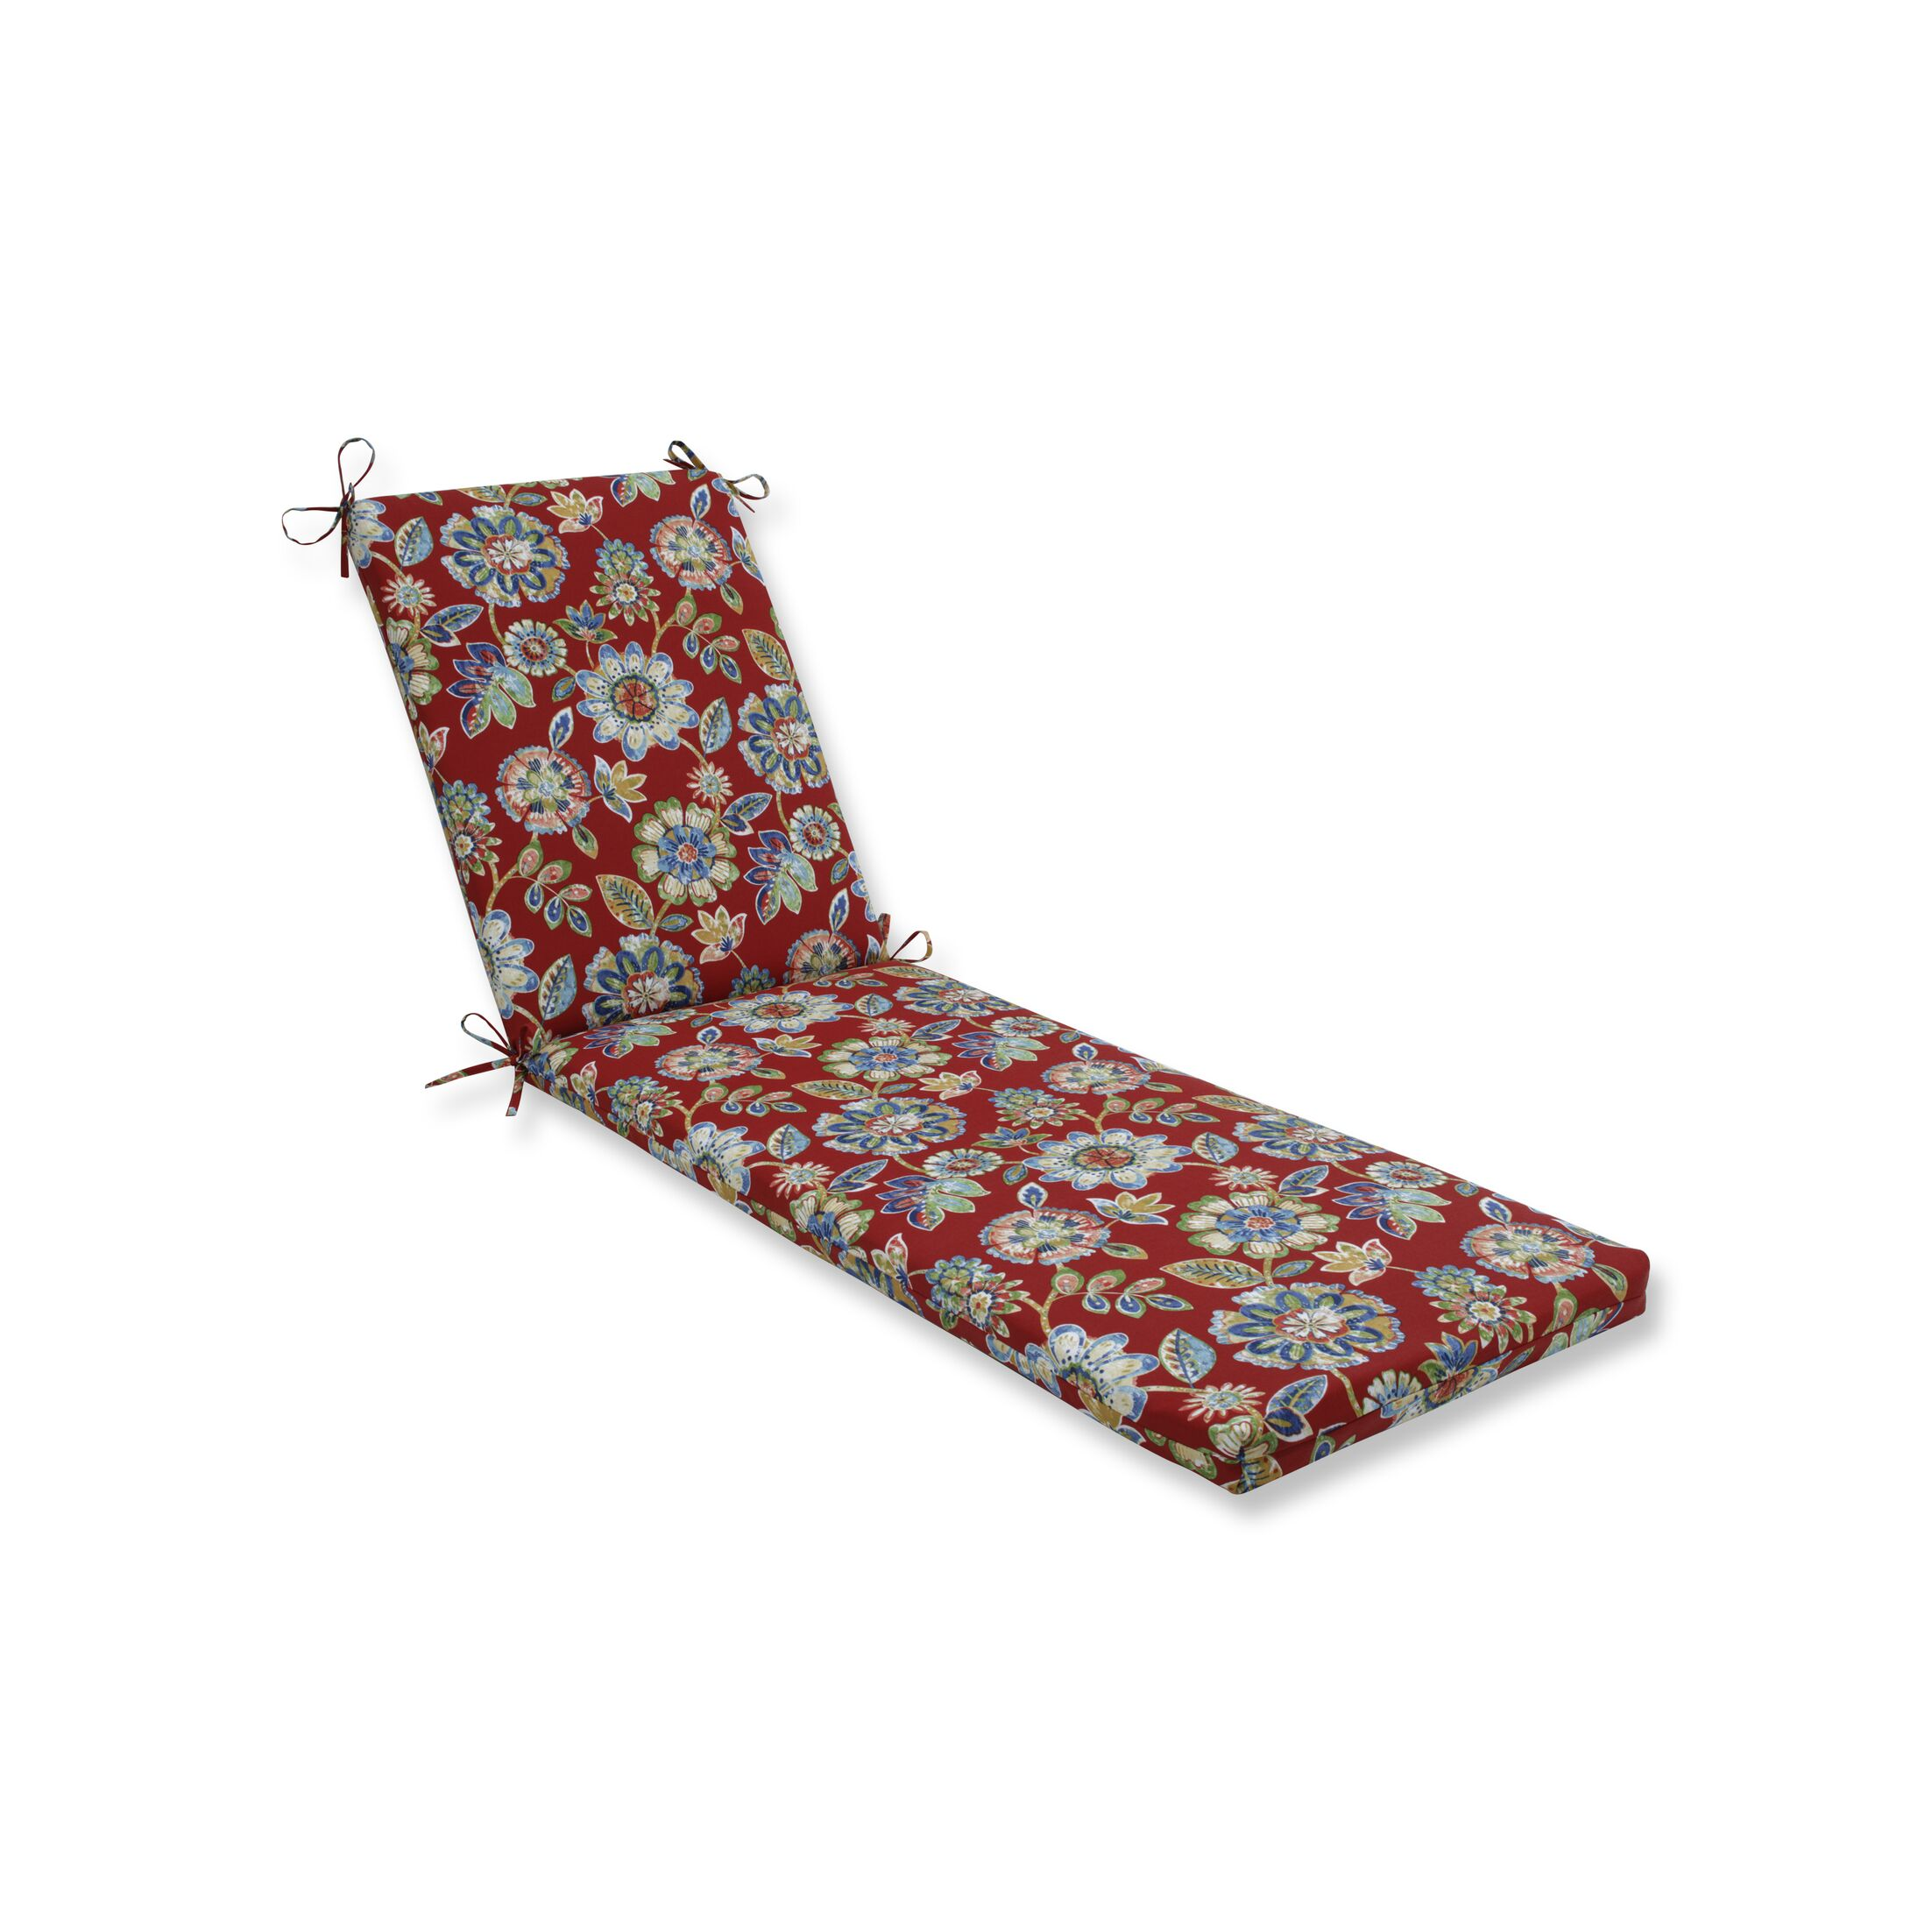 Cherry Indoor/Outdoor Chaise Lounge Cushion